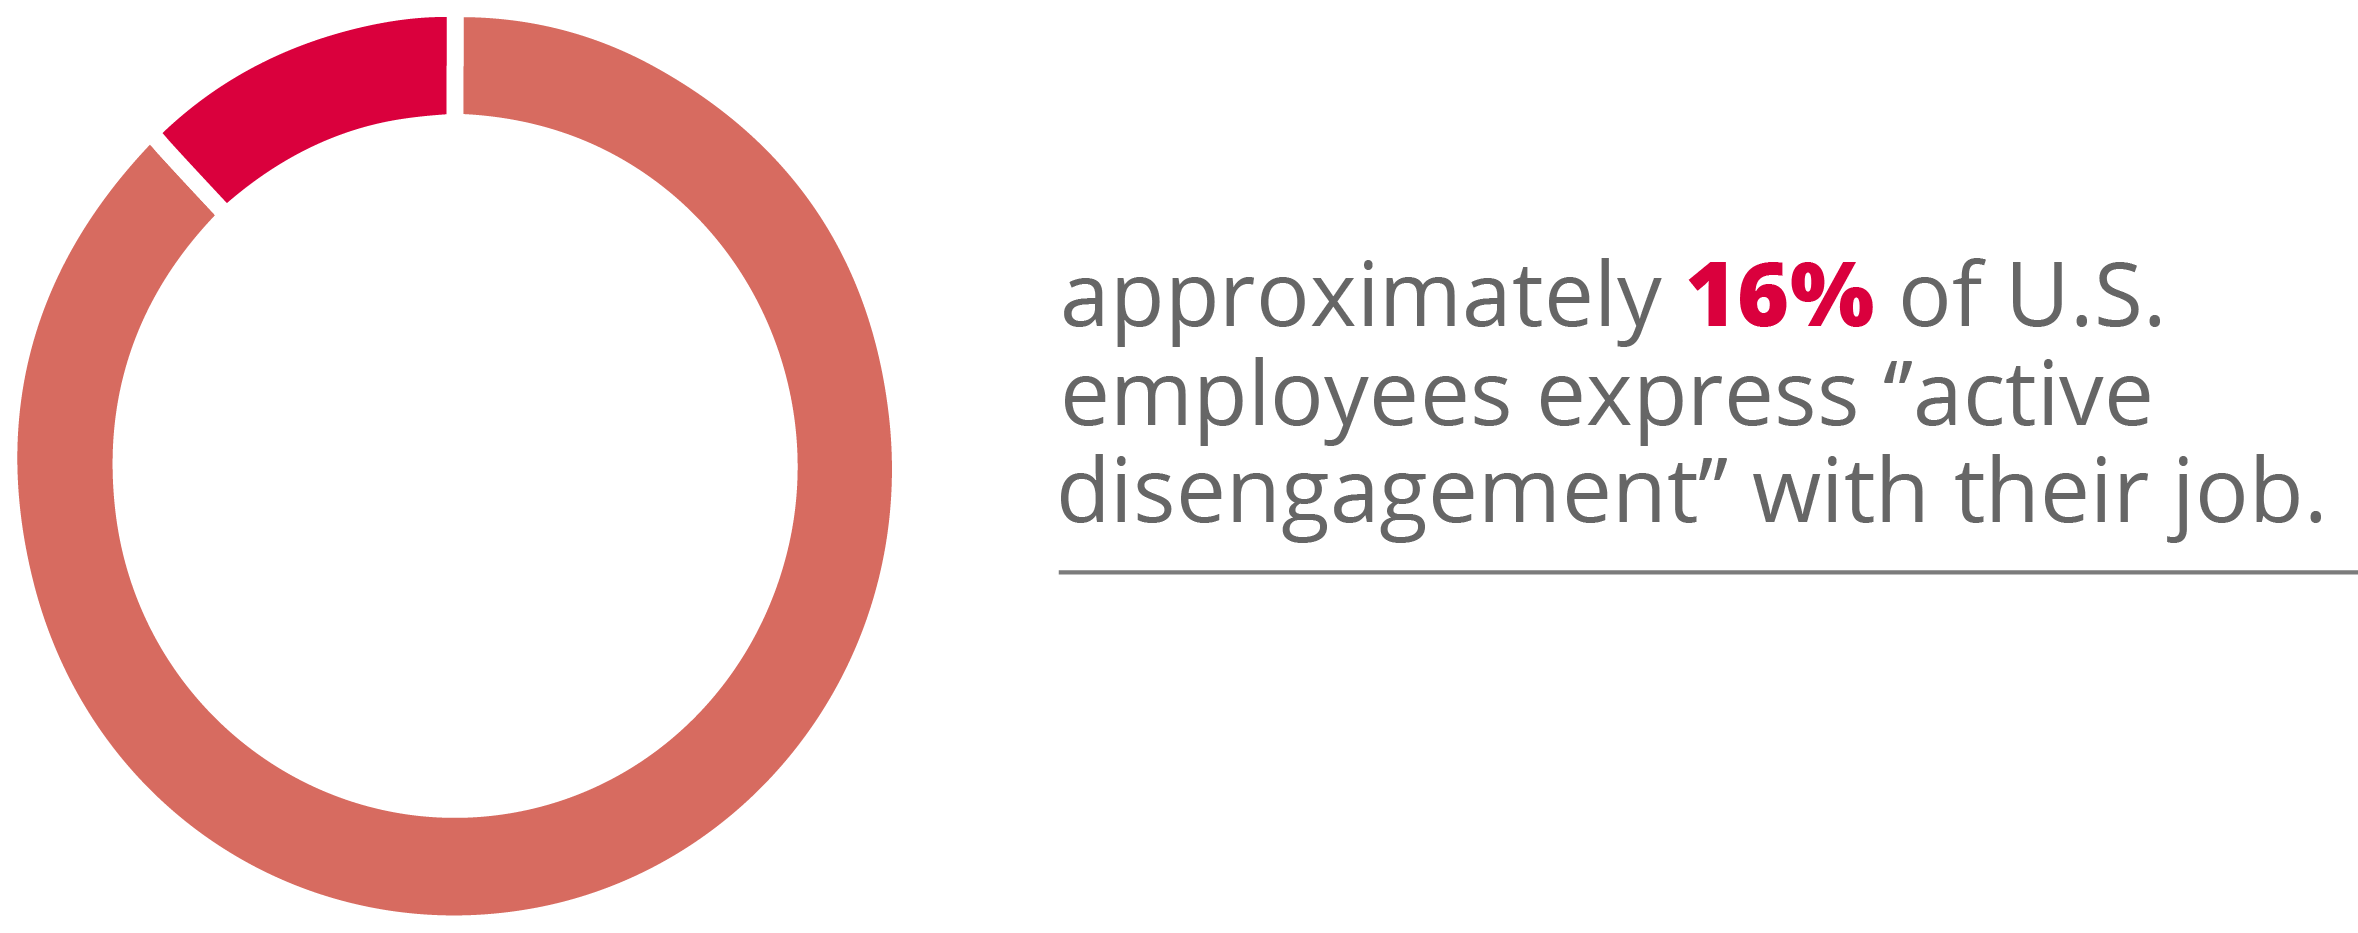 16% of employees in the US express disengagement with their jobs